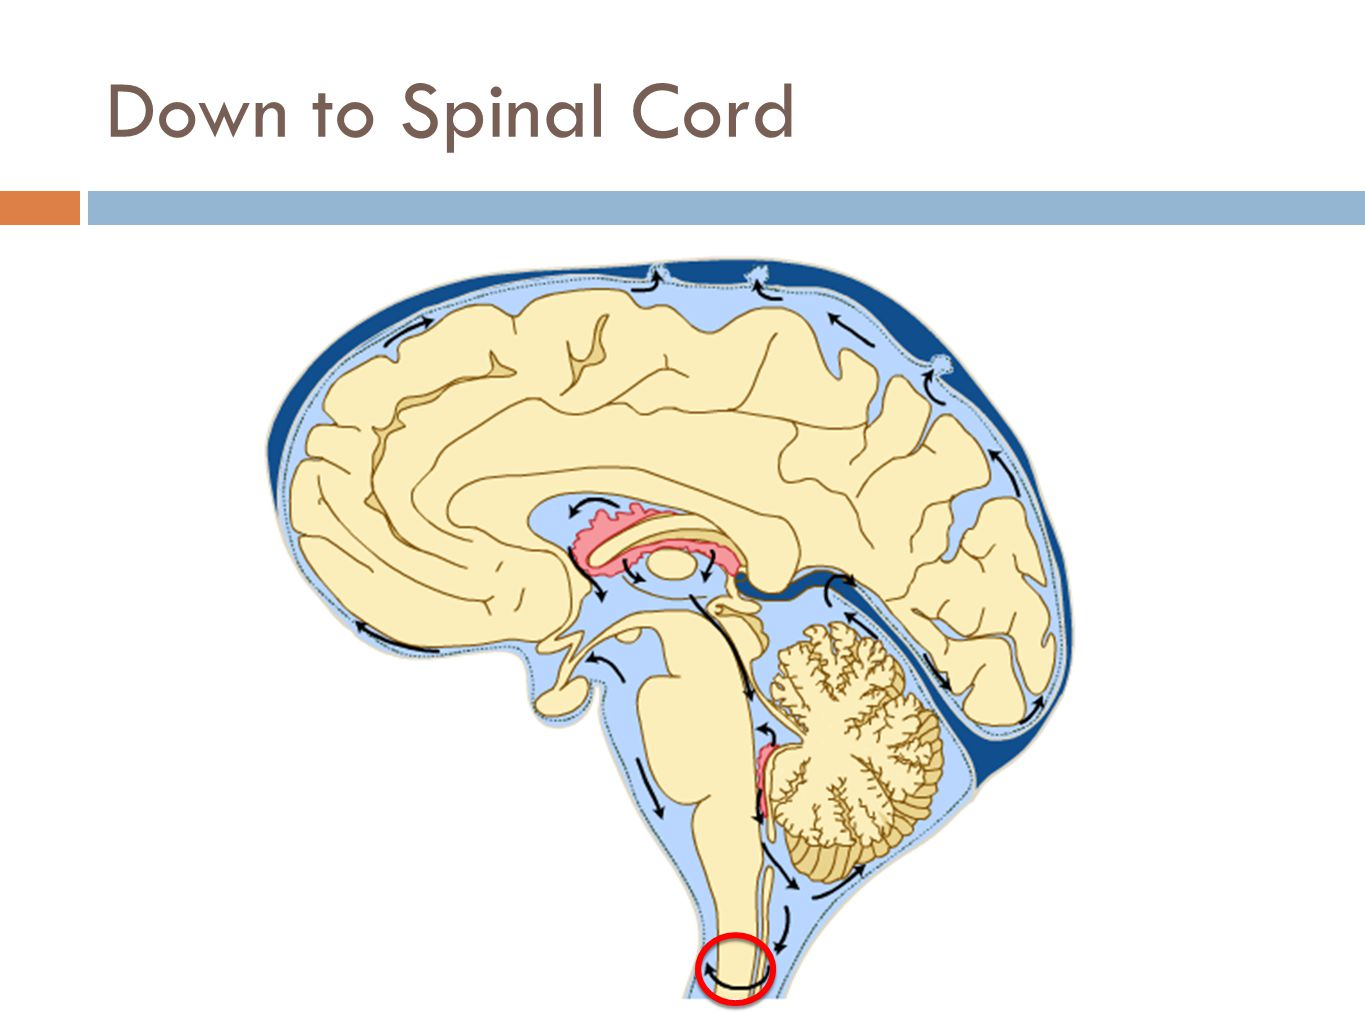 Down to Spinal Cord